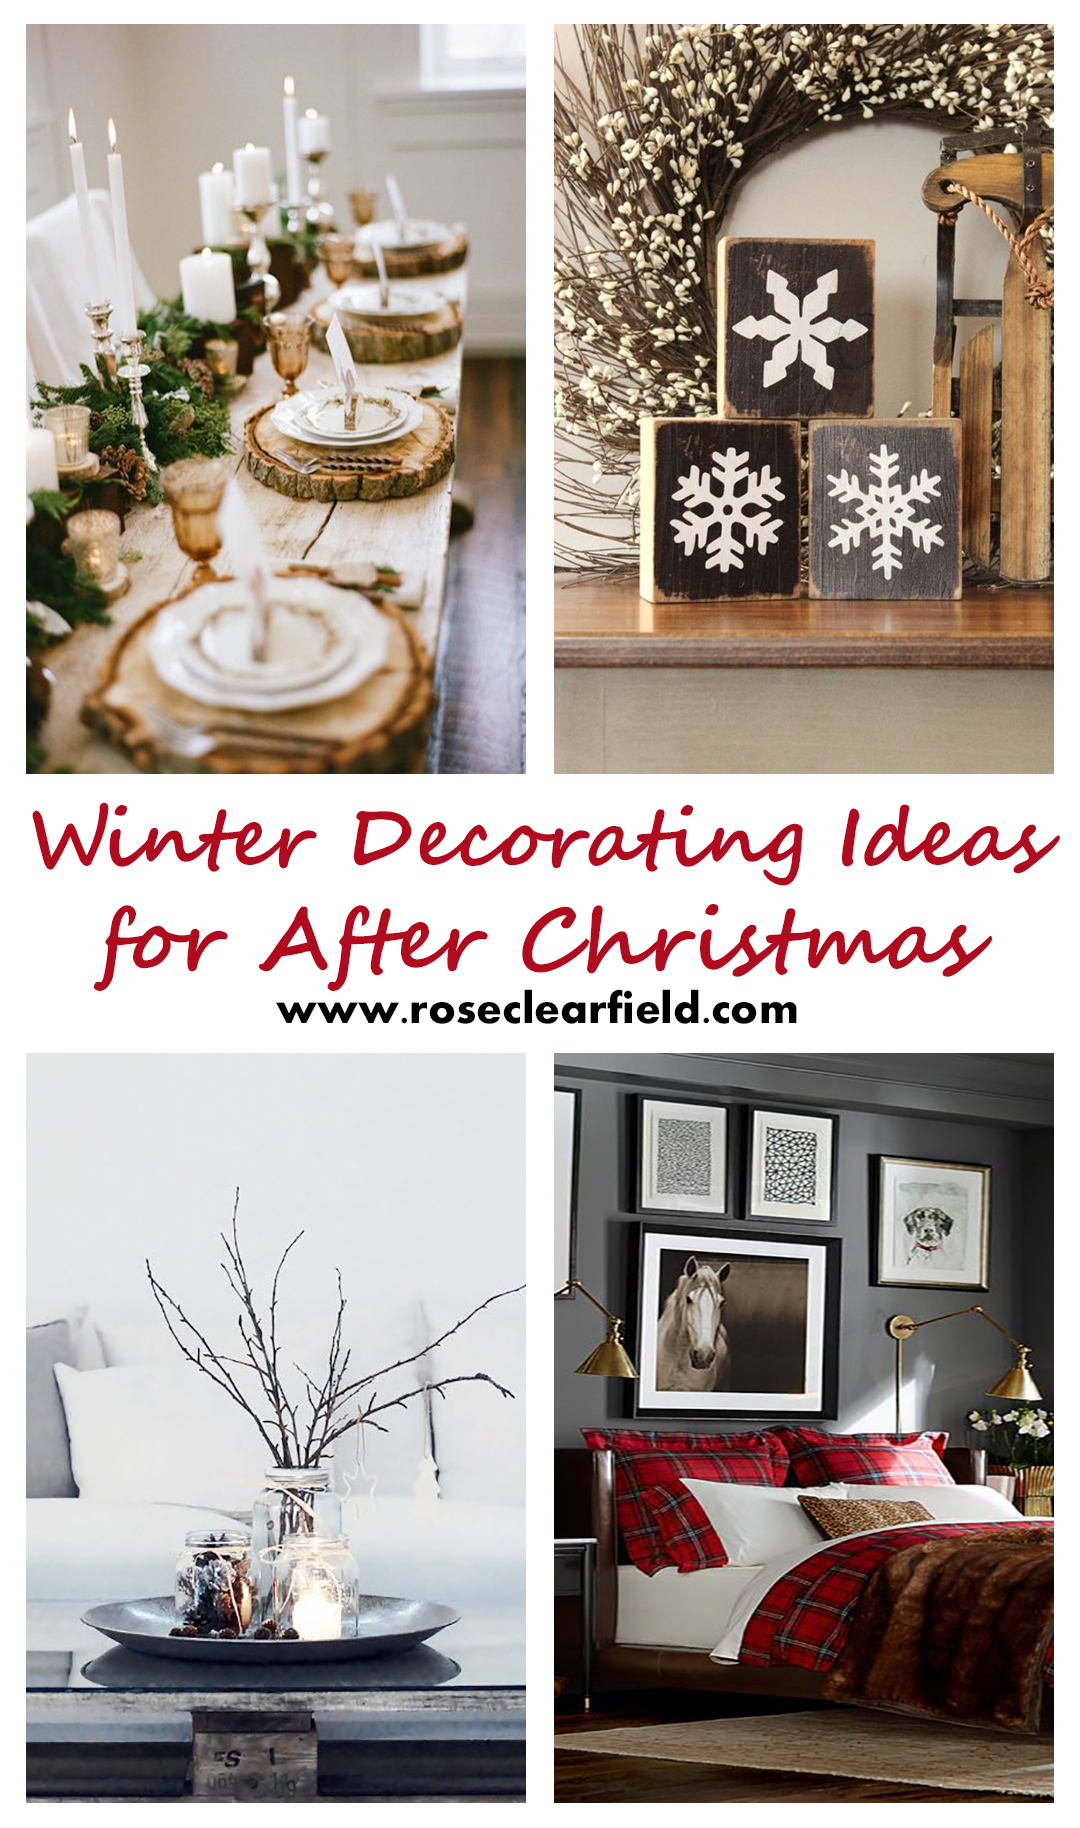 Decorating Tips For Living Room Dining Room Combo: Winter Decorating Ideas For After Christmas • Rose Clearfield